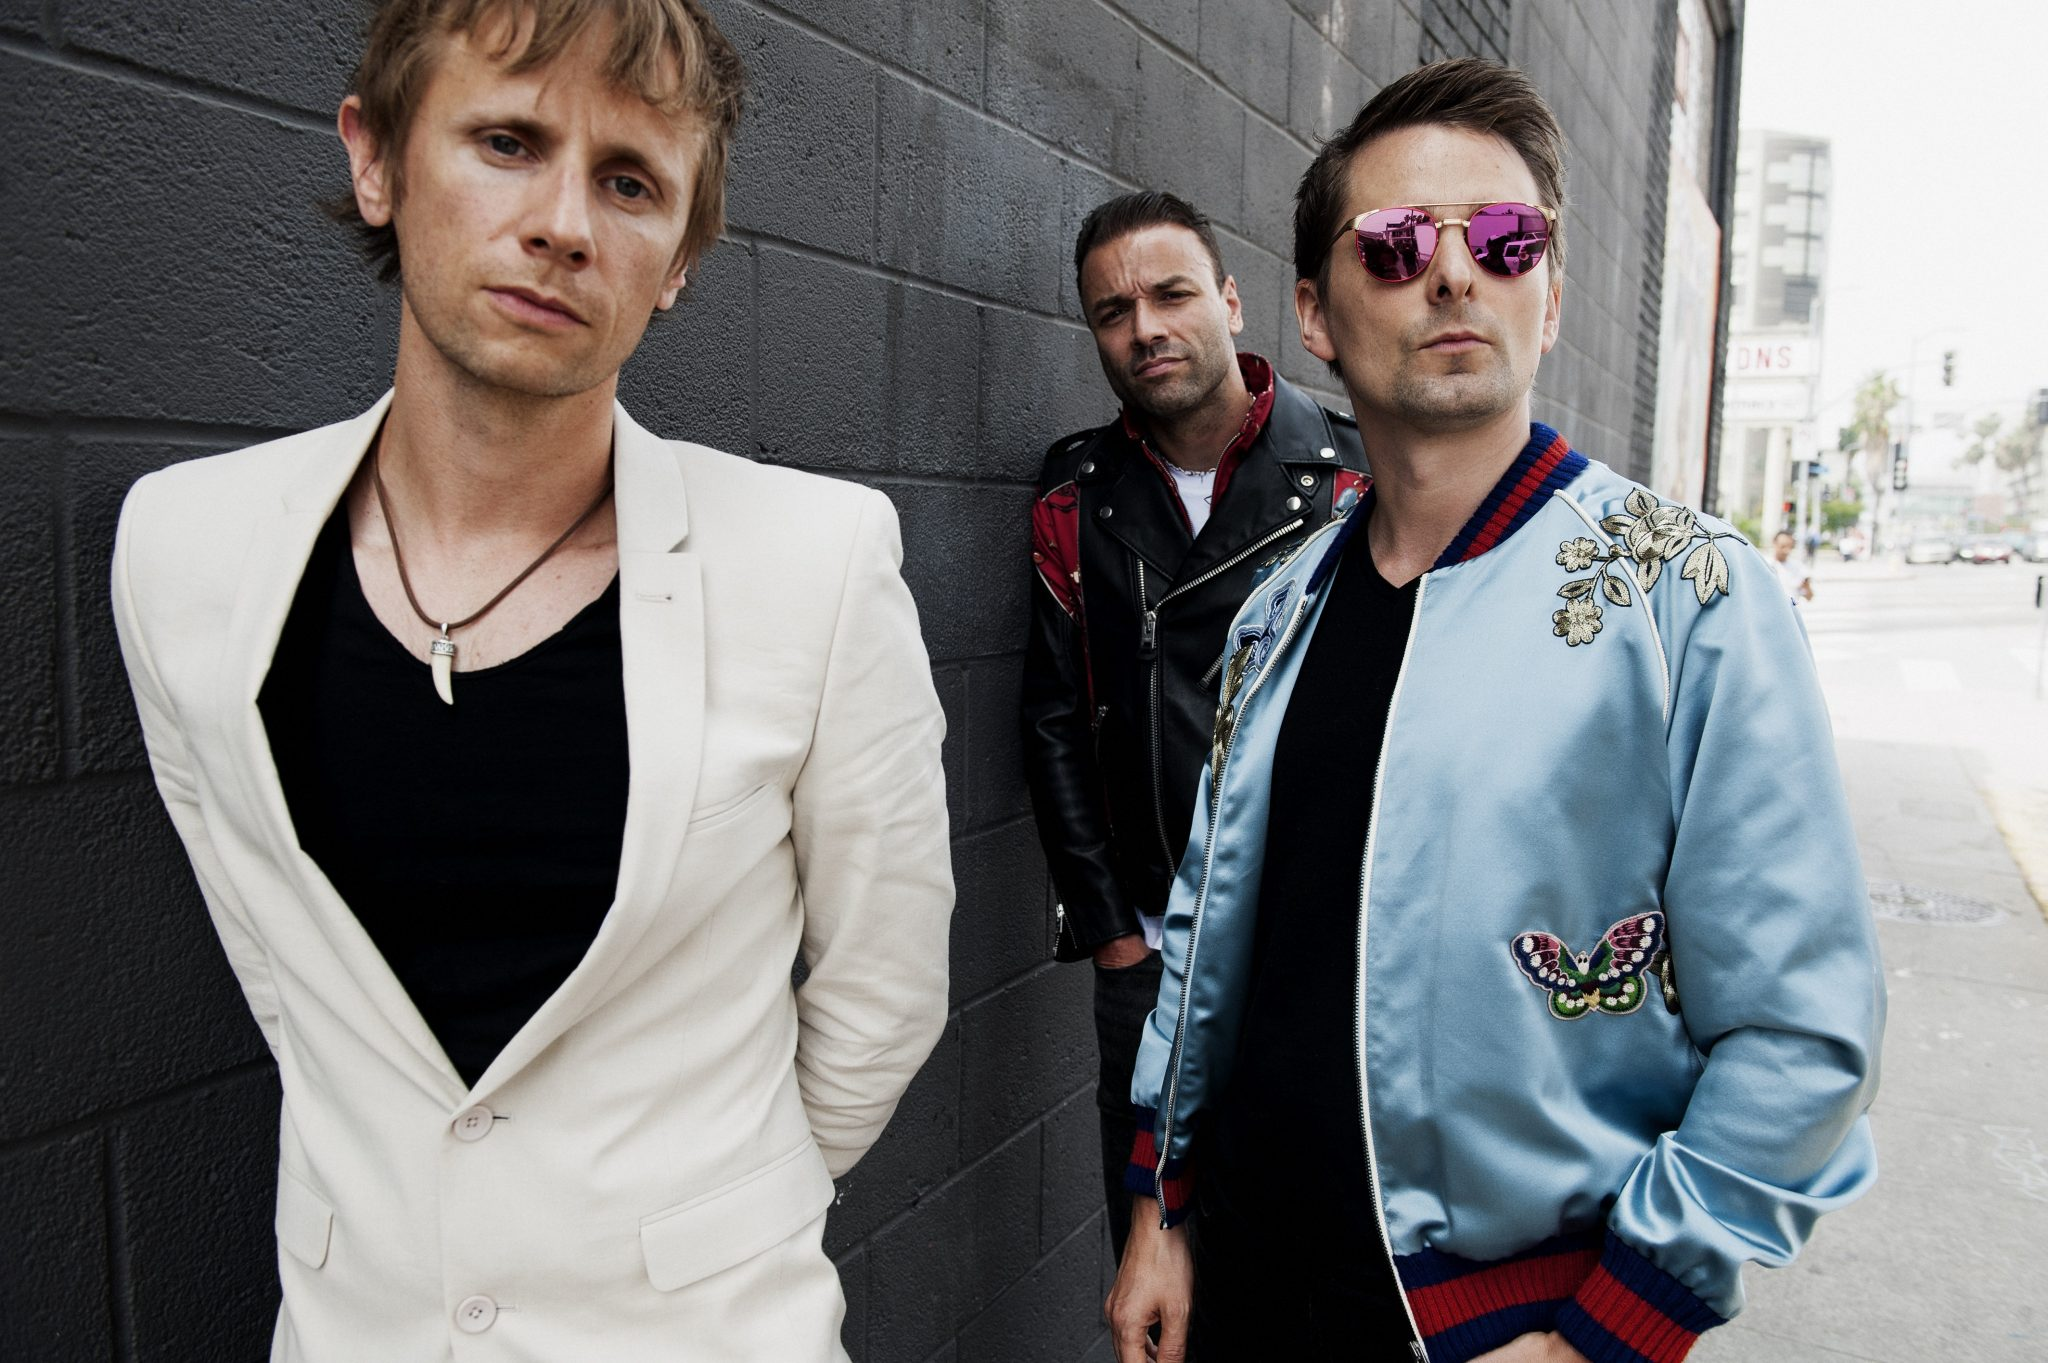 MUSE - Thought Contagion (Official Music Video)